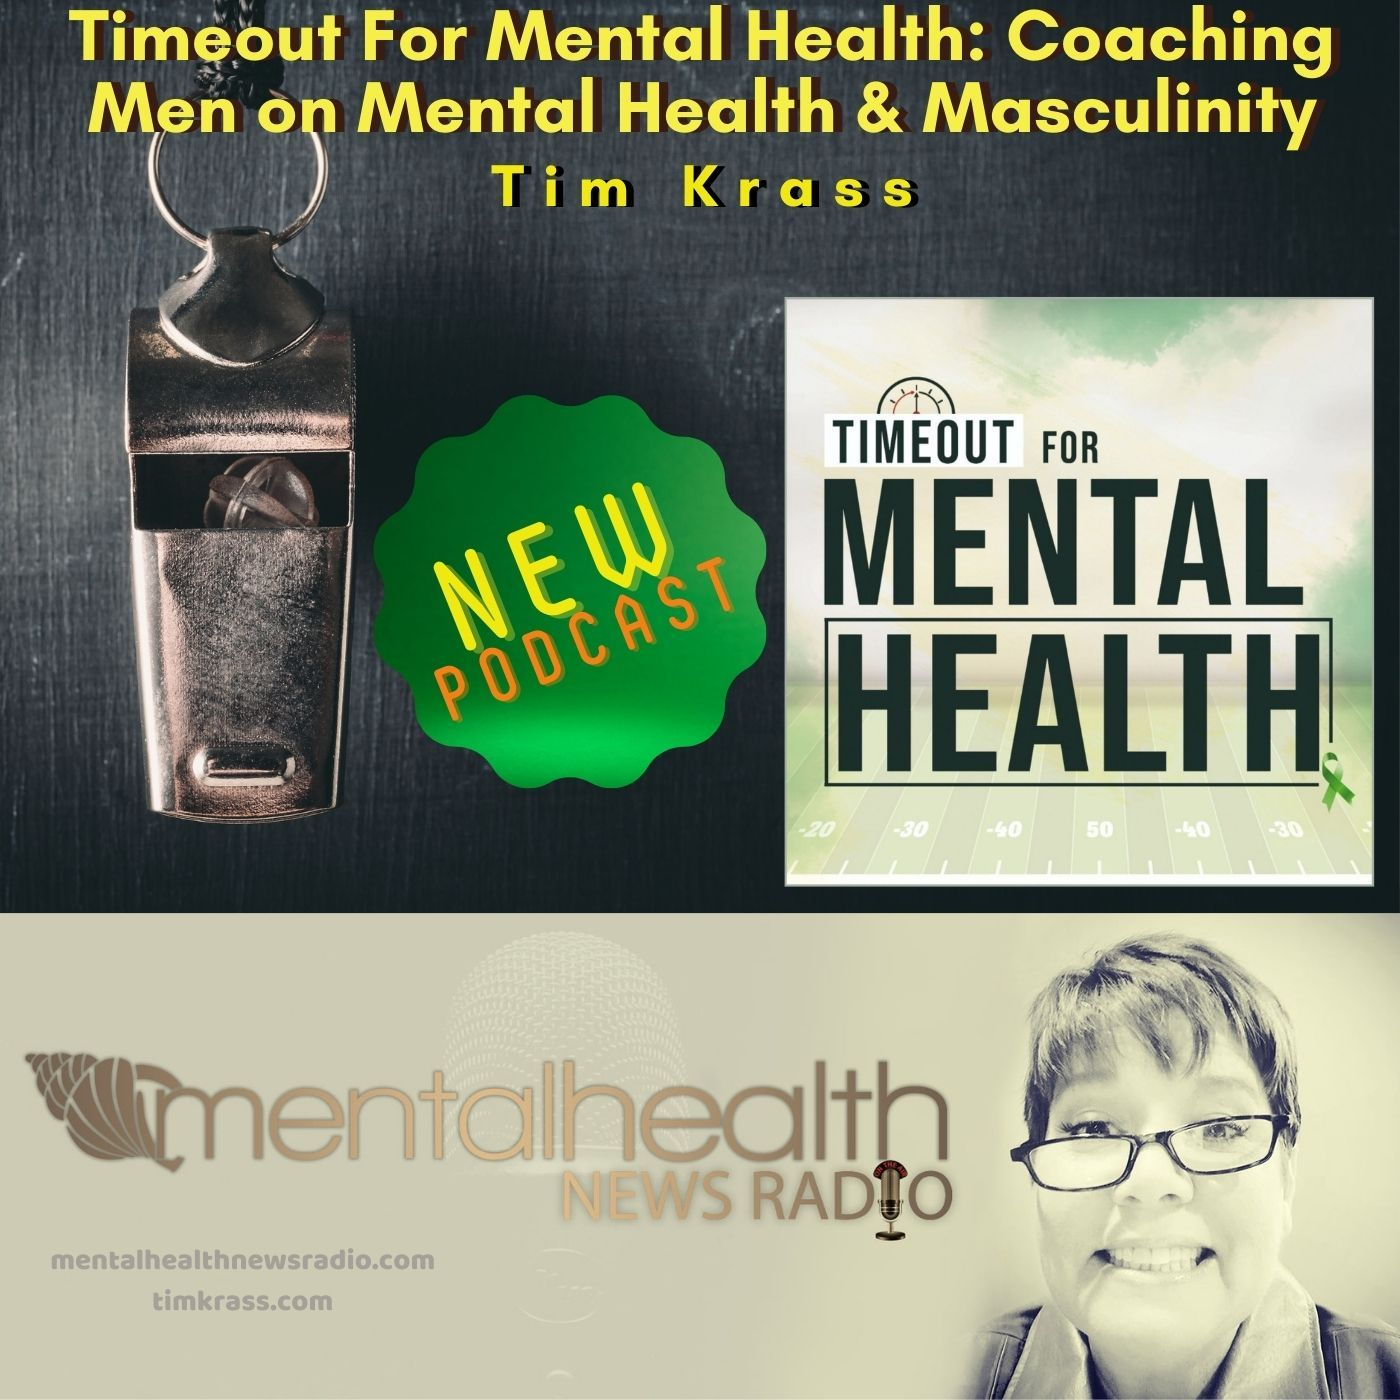 Mental Health News Radio - Timeout For Mental Health:  Coaching Men on Mental Health & Masculinity with Tim Krass